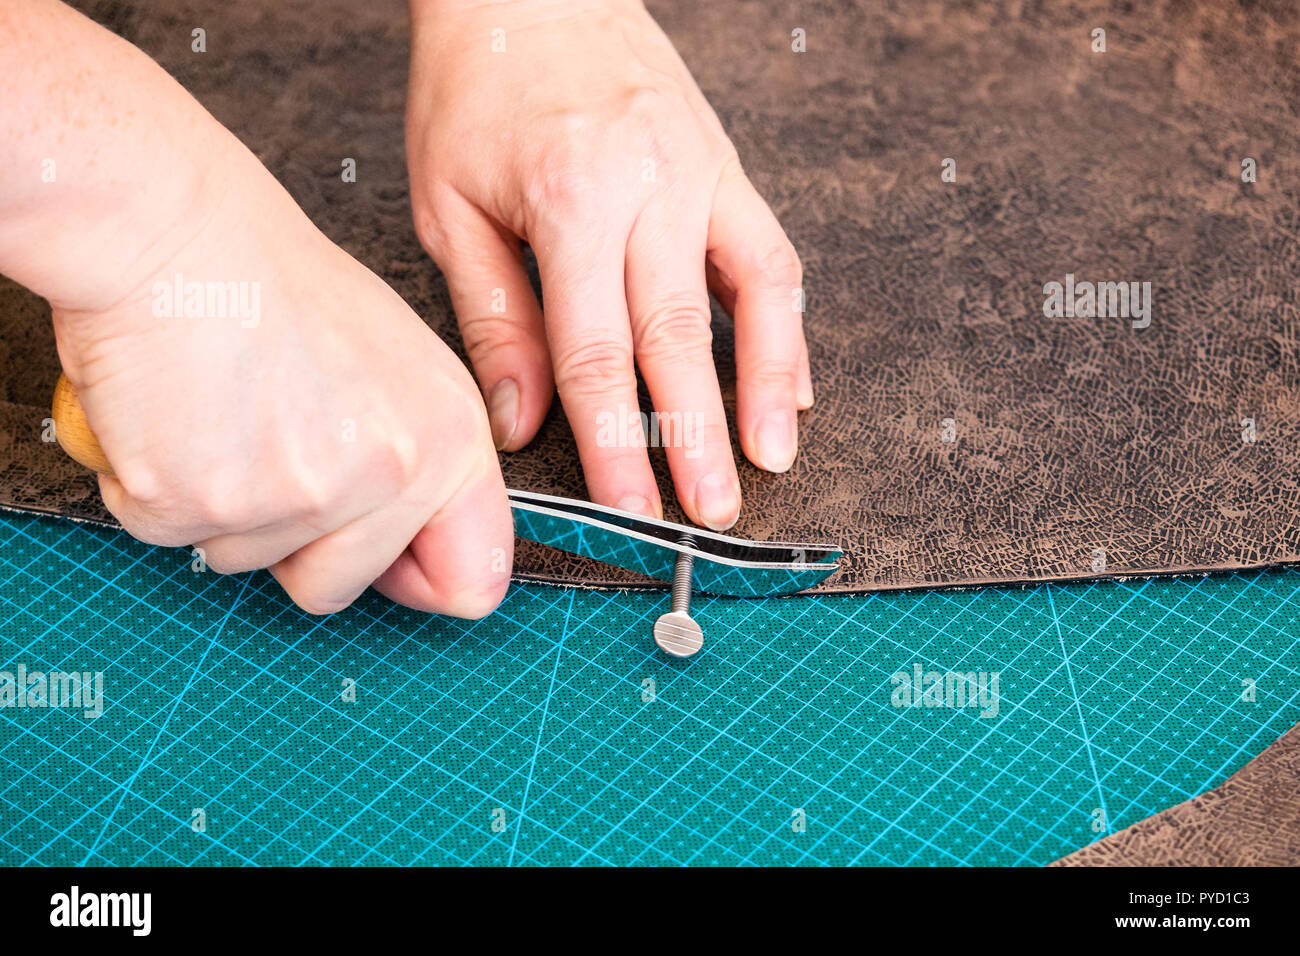 workshop of making the carved leather bag - craftsman draws pattern on the carved and colored leather for handbag by adjustable edge creaser tool - Stock Image